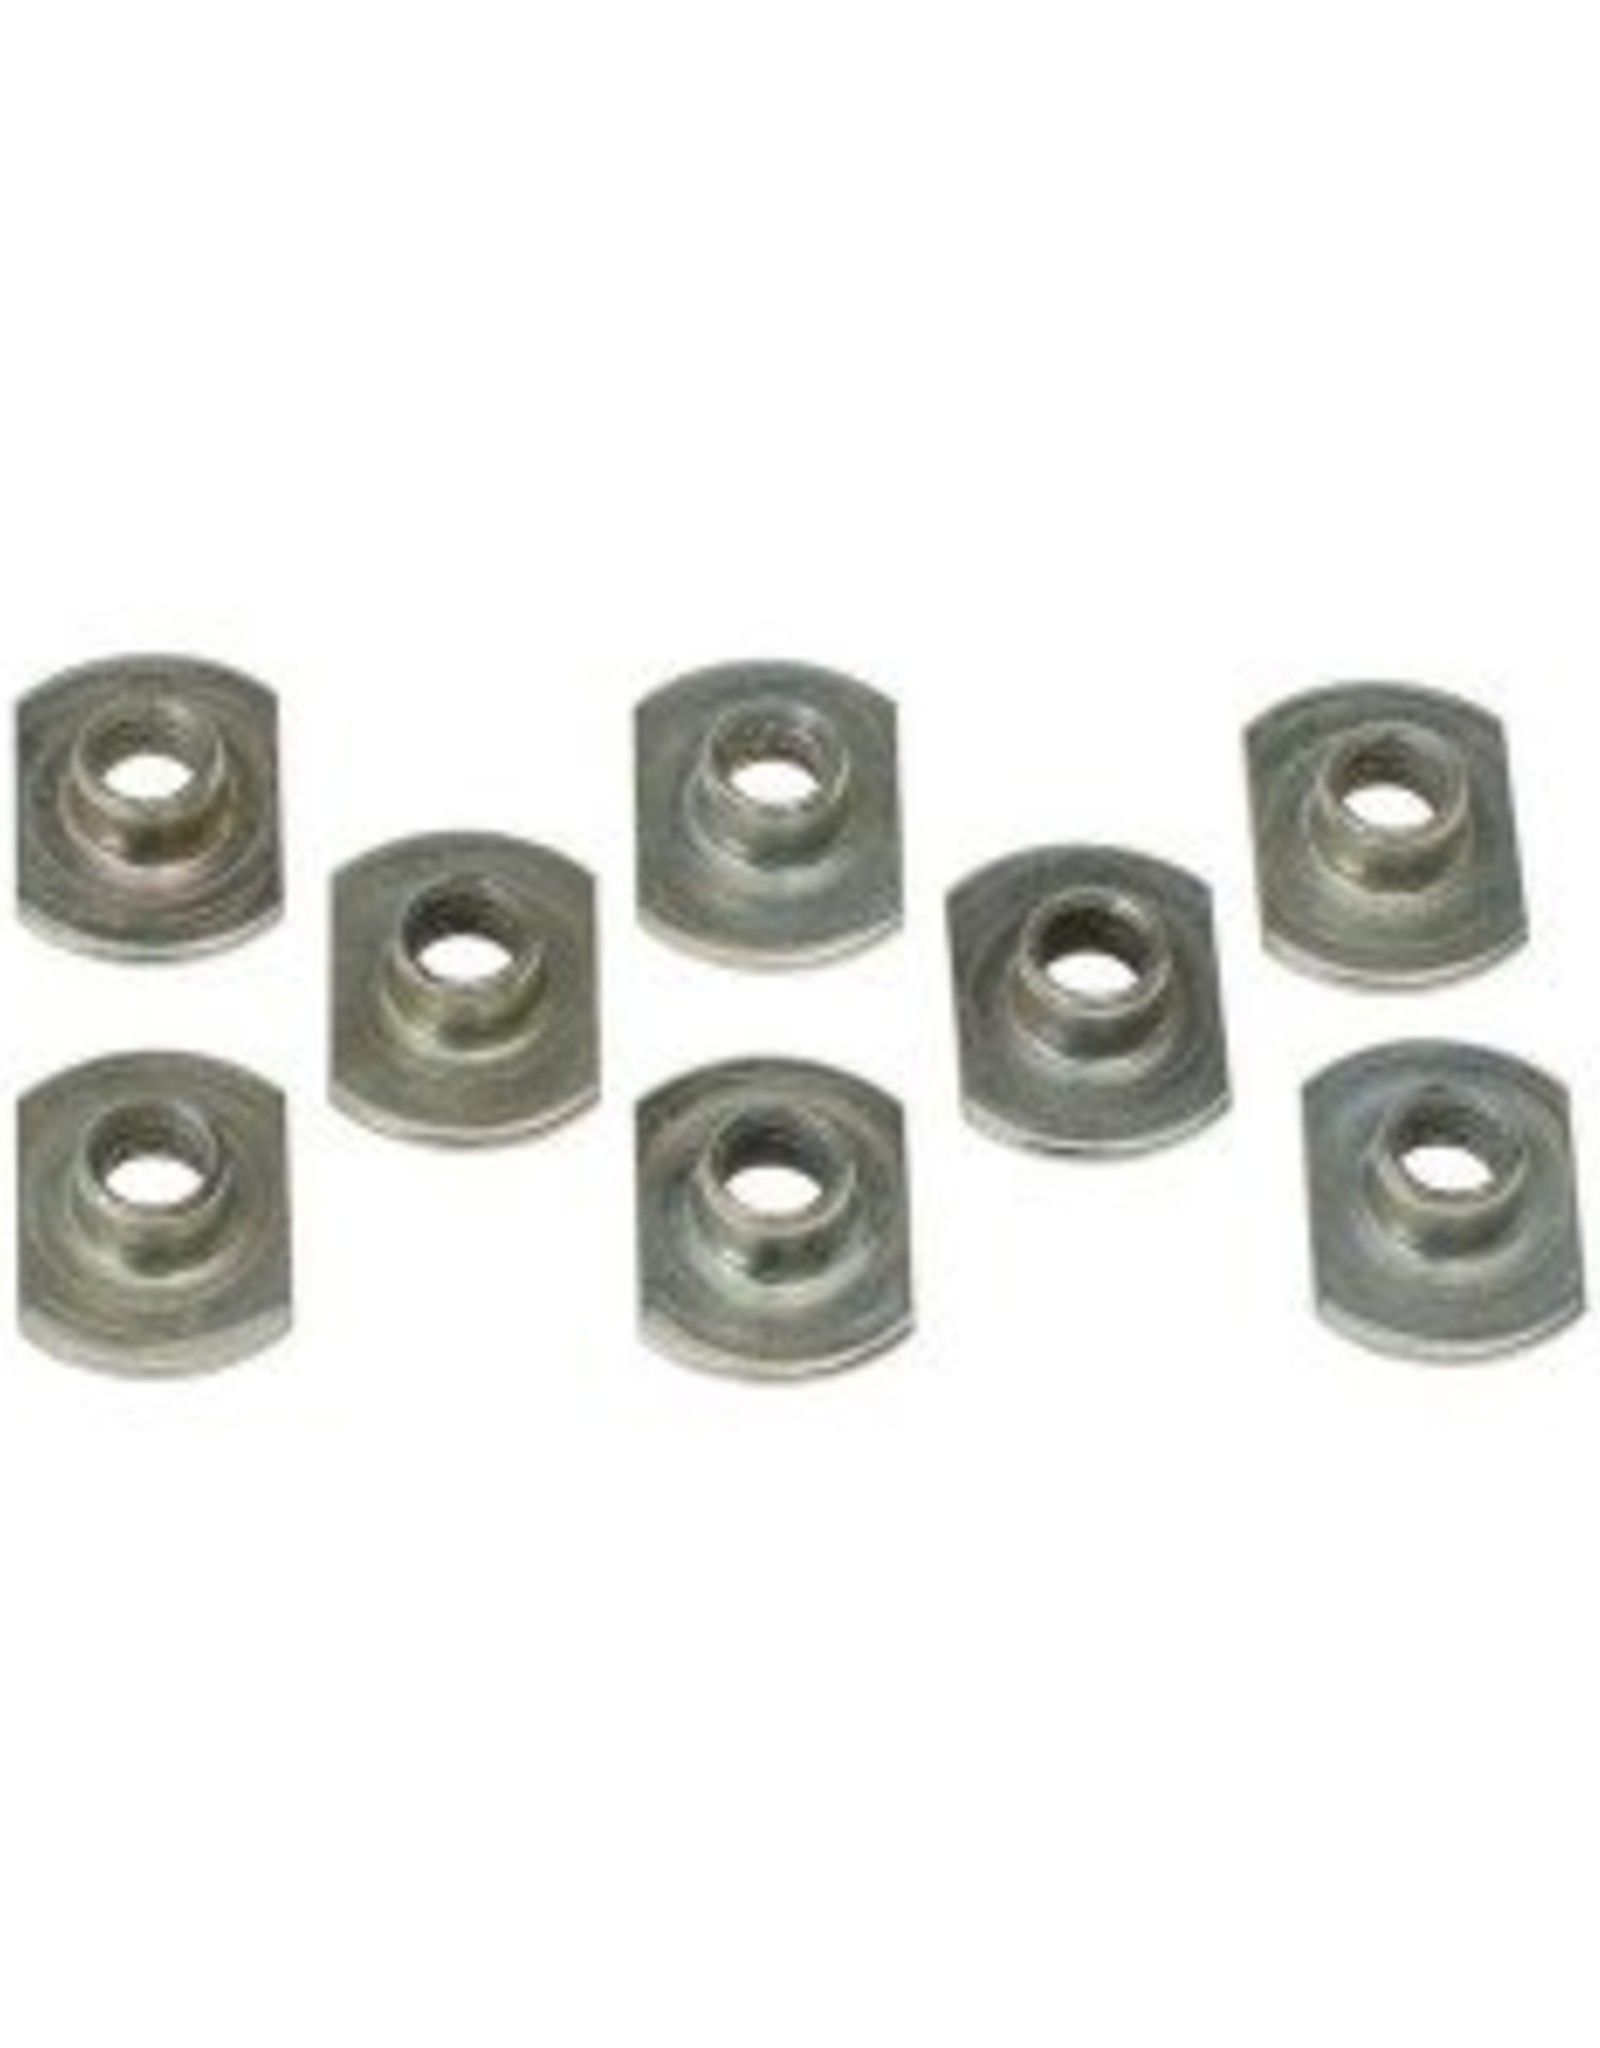 Voile - SLIDER T NUTS (Pack of 8)